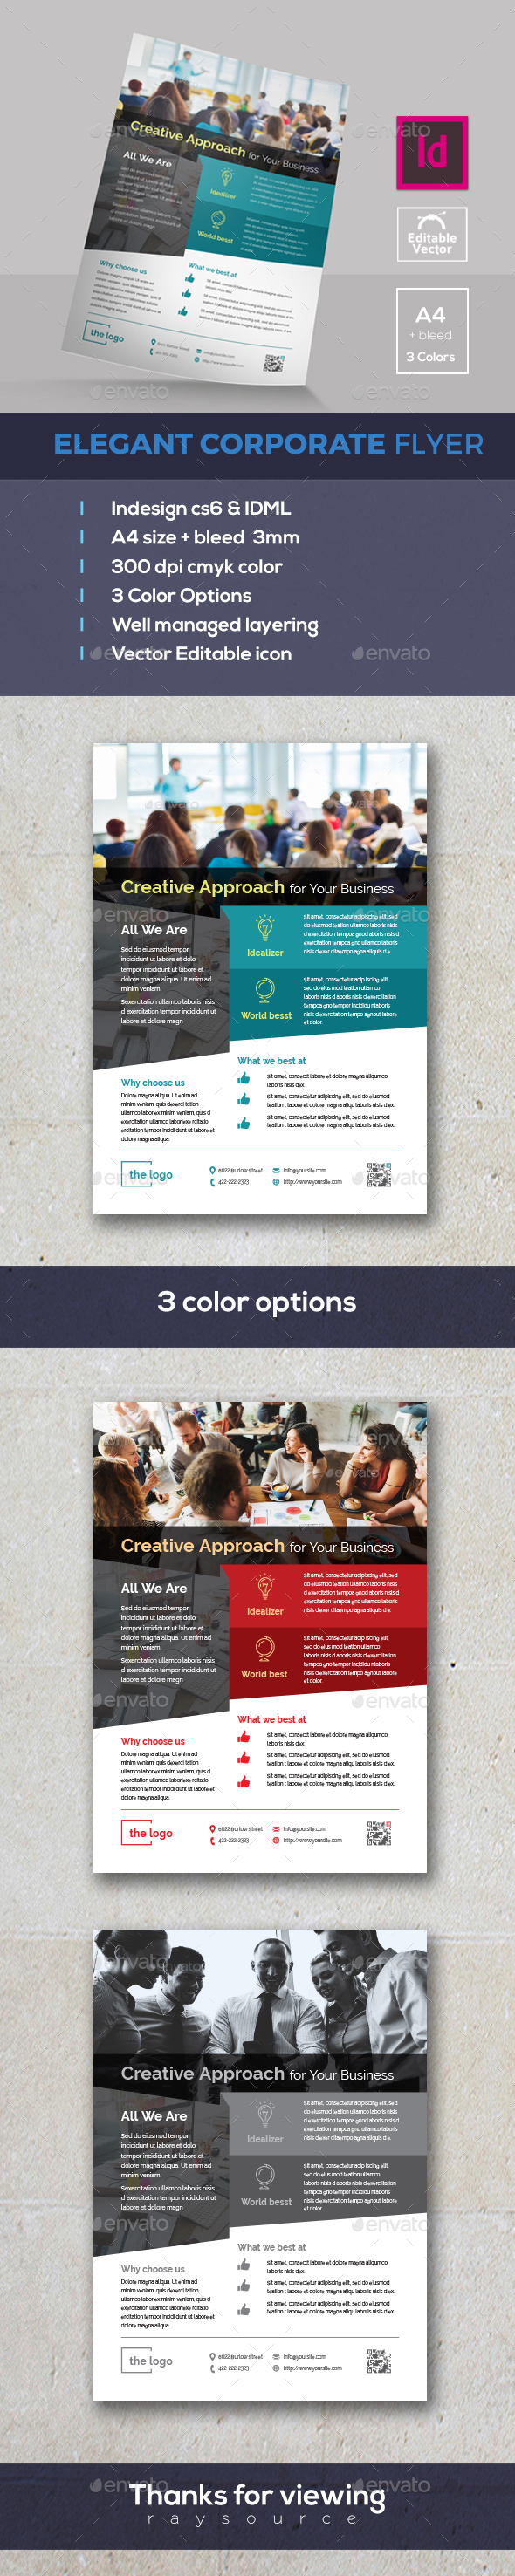 Elegant Indesign Flyer - Corporate Flyers